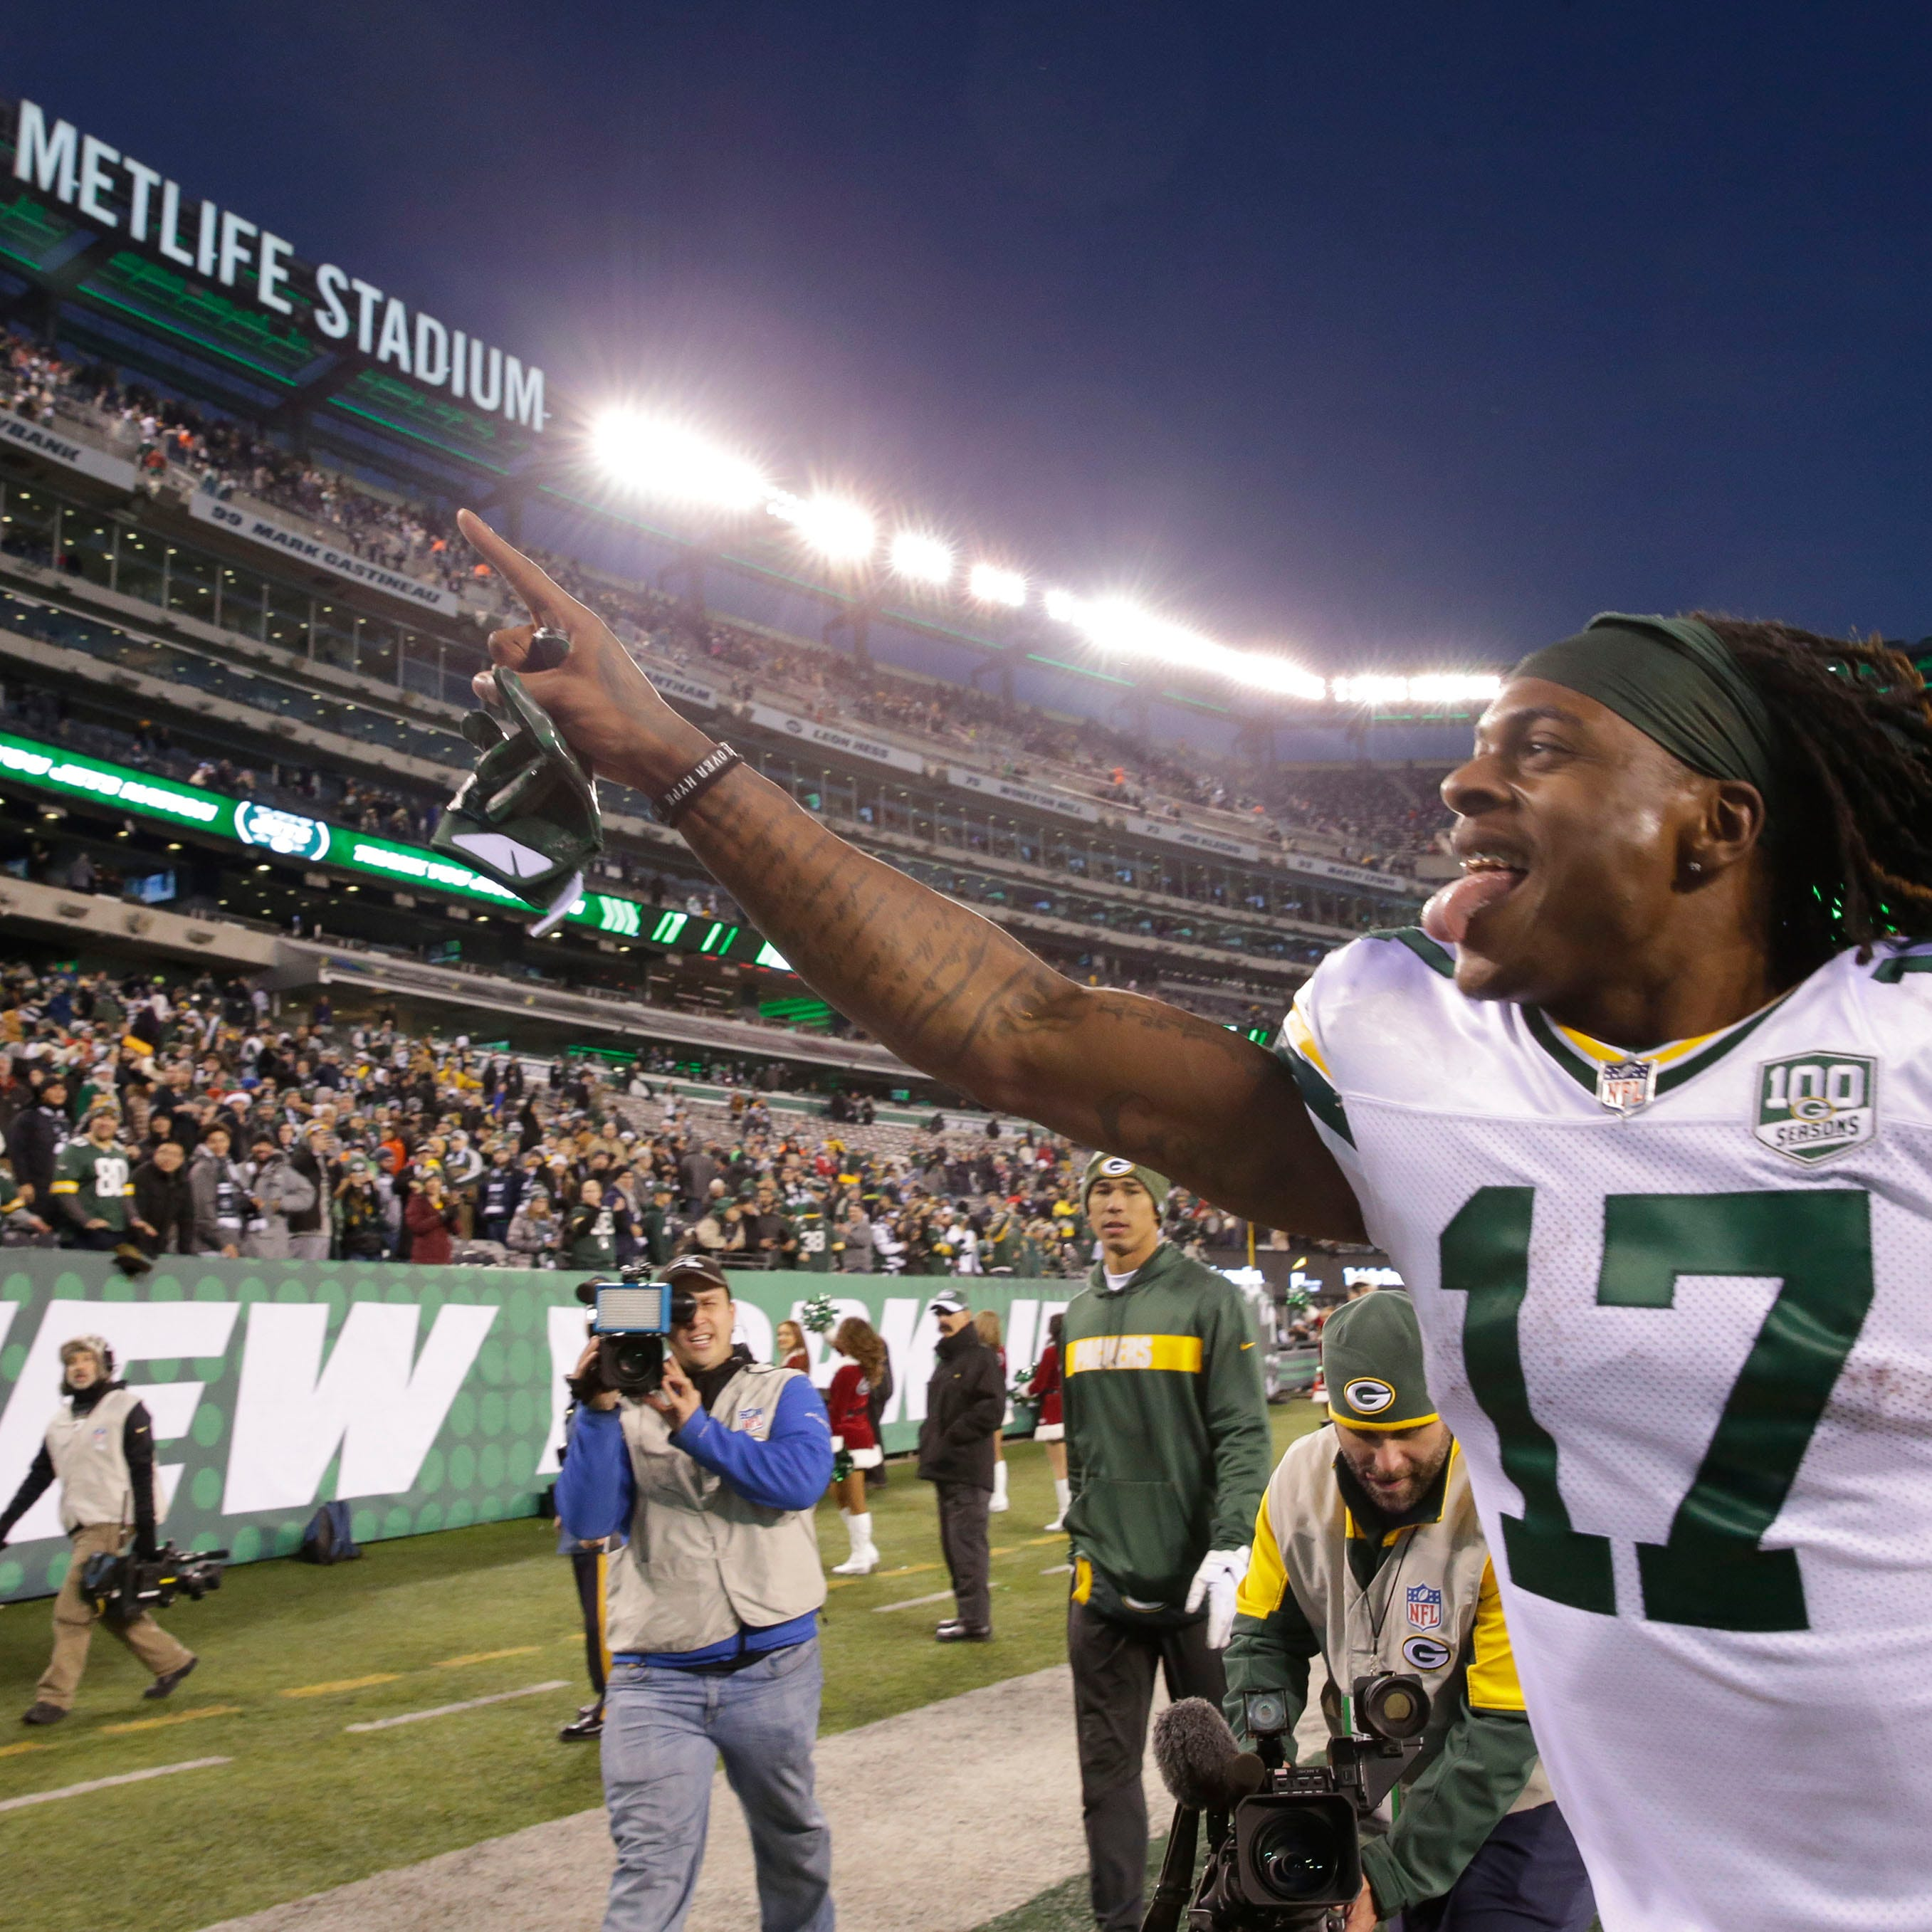 Green Bay Packers' Davante Adams responds to the fans after the Packers 44-38 overtime win against the New York Jets on Dec. 23 at MetLife Stadium  in East Rutherford, New Jersey.